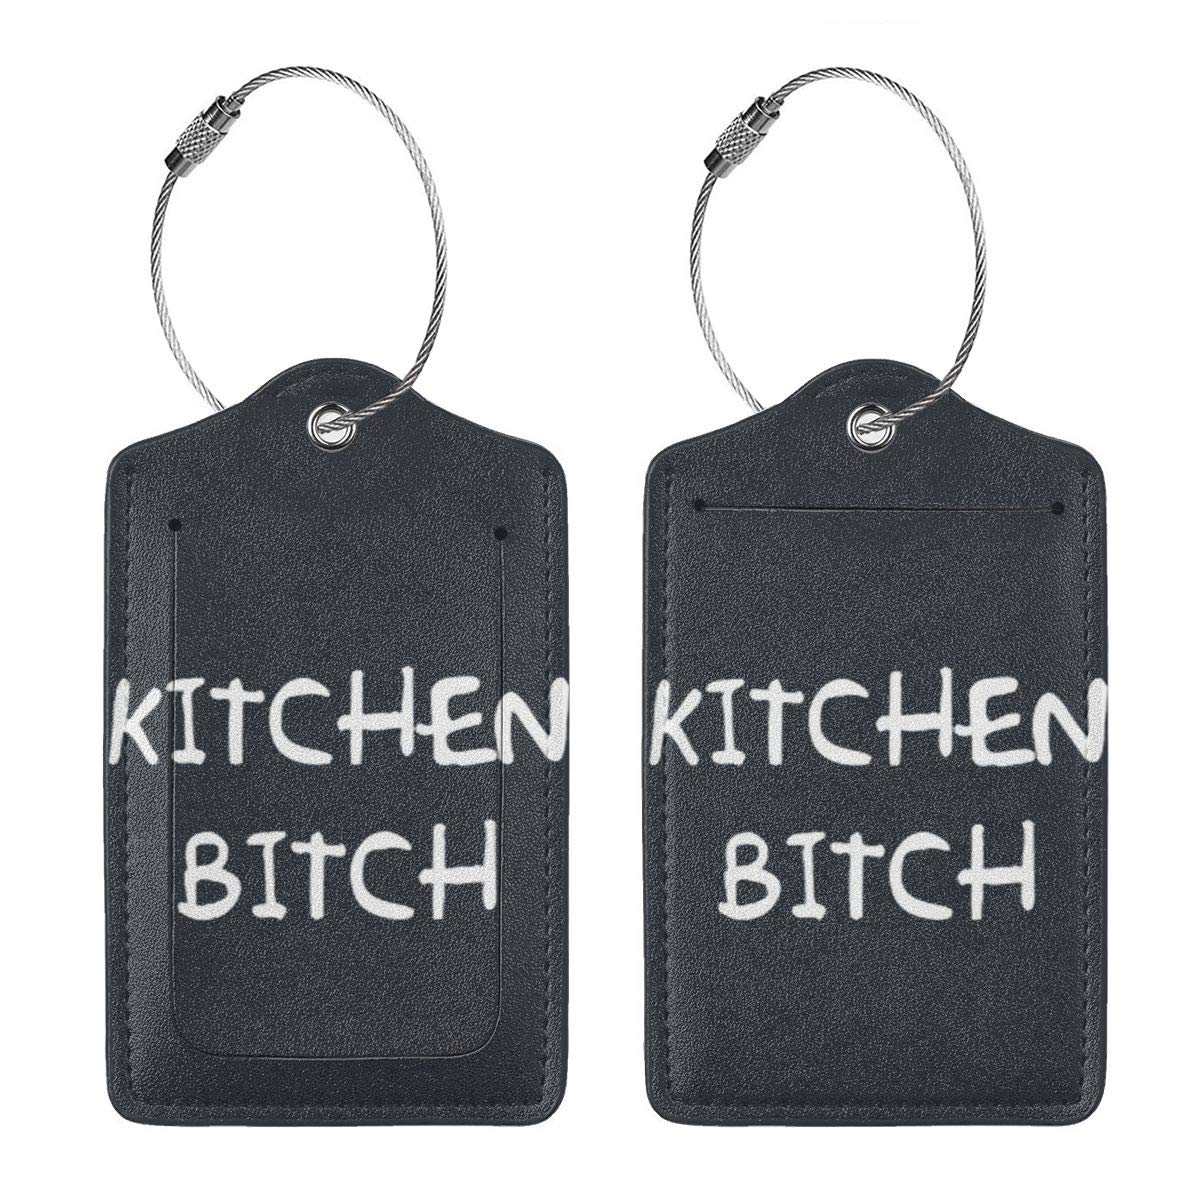 Kitchen Bitch Leather Luggage Tags Suitcase Tag Travel Bag Labels With Privacy Cover For Men Women 2 Pack 4 Pack